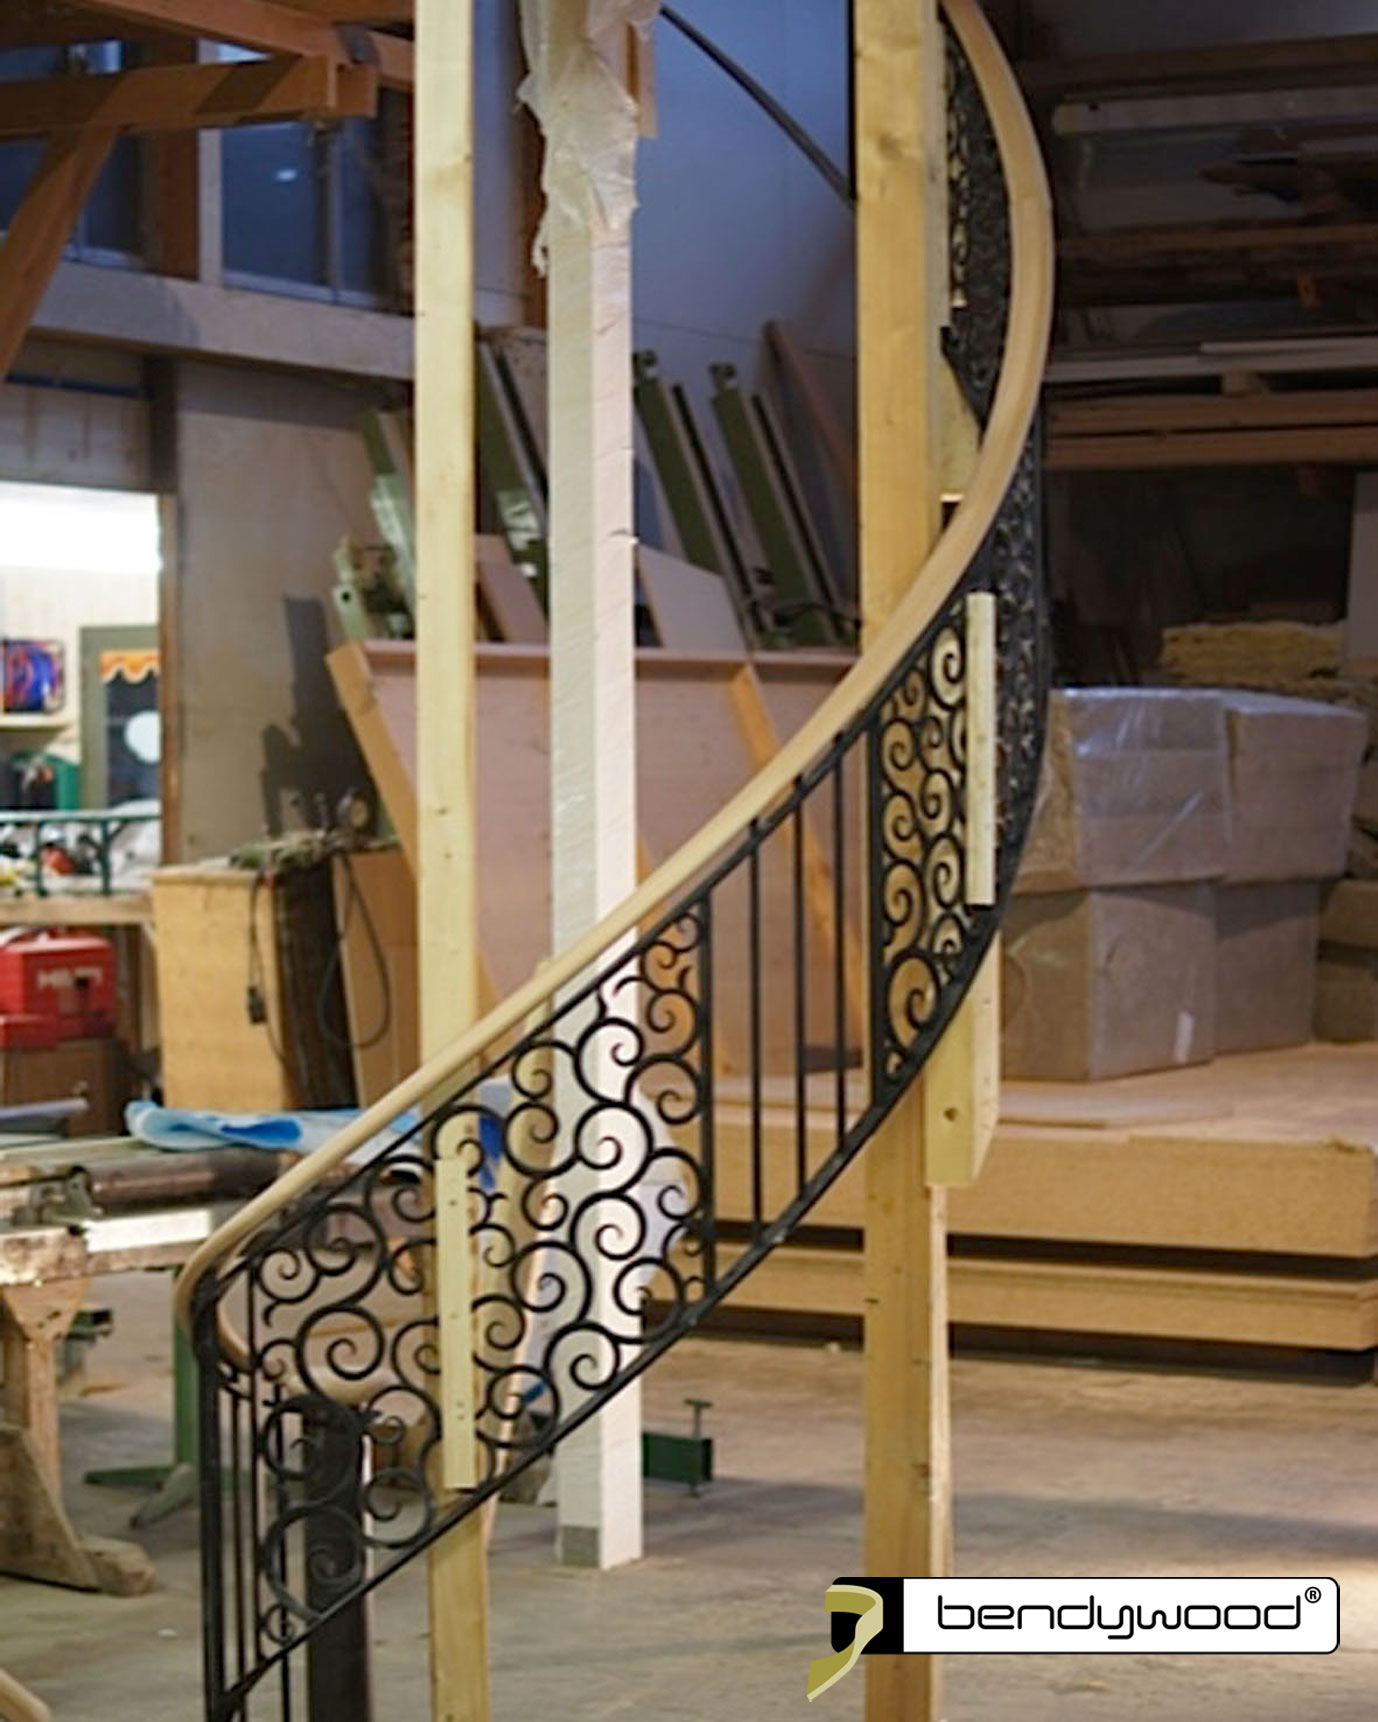 Oval bending handrail in Bendywood®-beech for curved staircase with wrought iron banister.